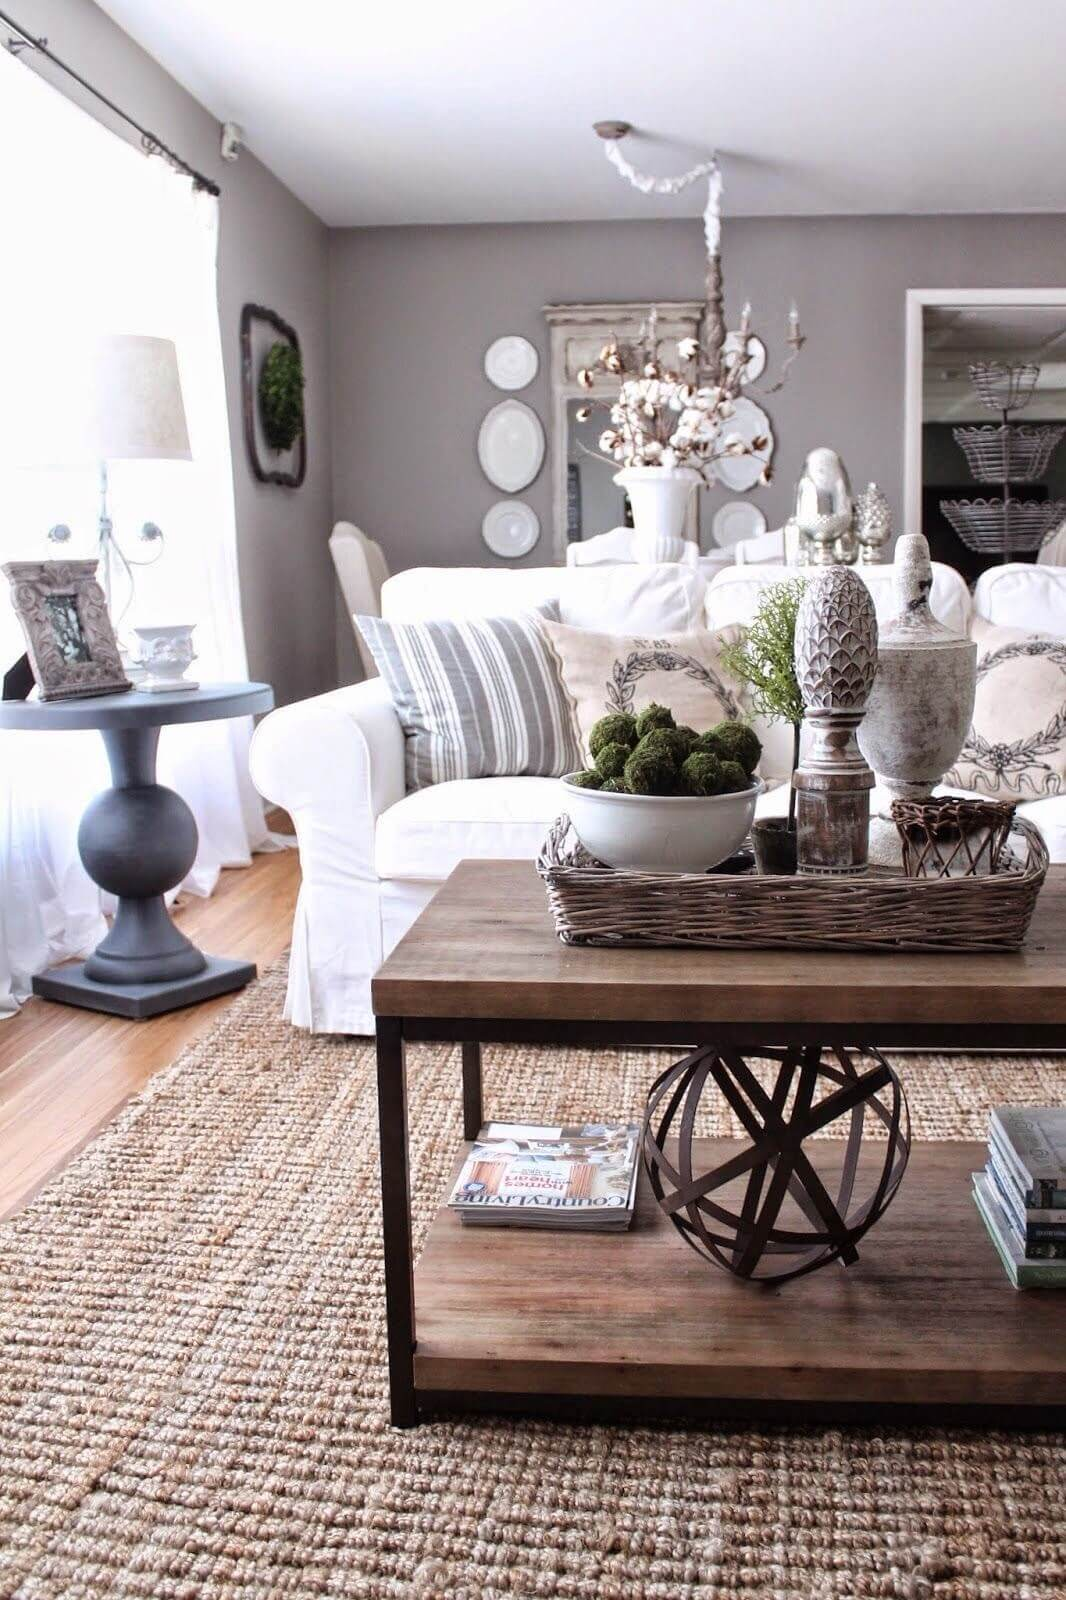 best coffee table decorating ideas and designs for homebnc accents double decker display geometric art natural pier one fruit drinks recipes room essentials accent instructions